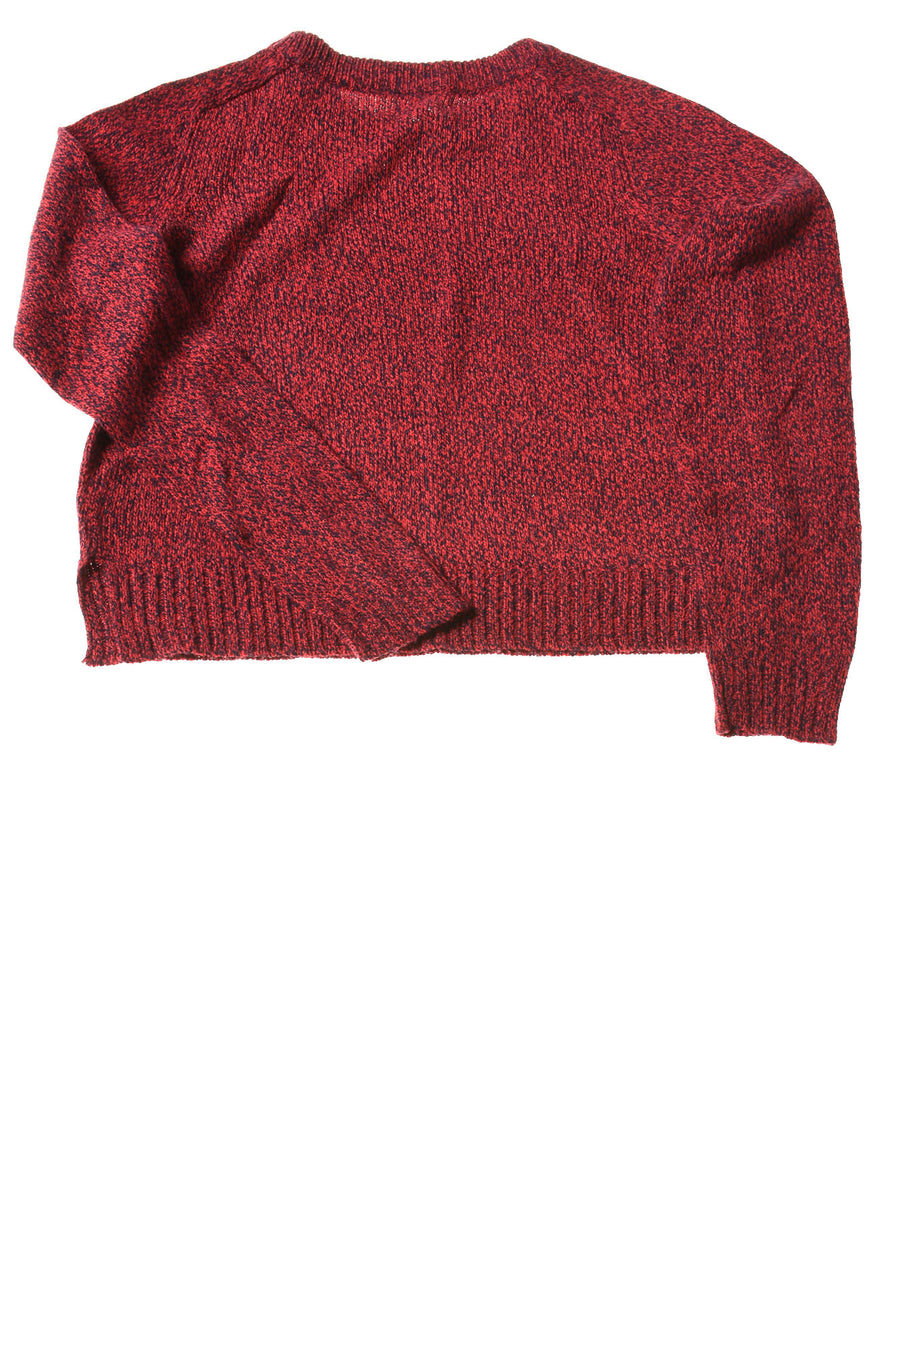 USED Divided Women's Sweater X-Small Red & Navy